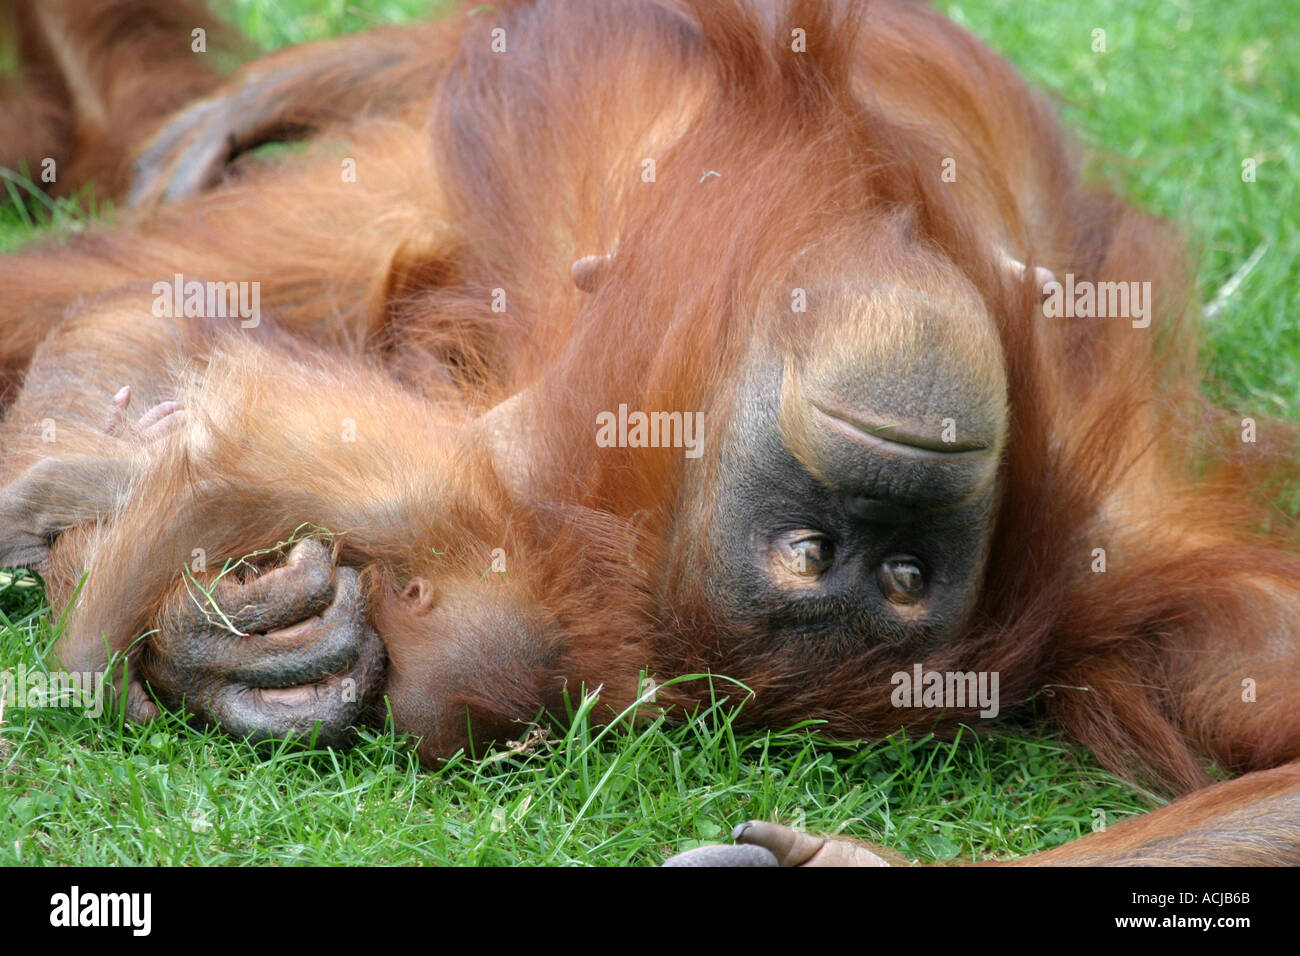 Orangutan mother and baby Motherly love - Stock Image